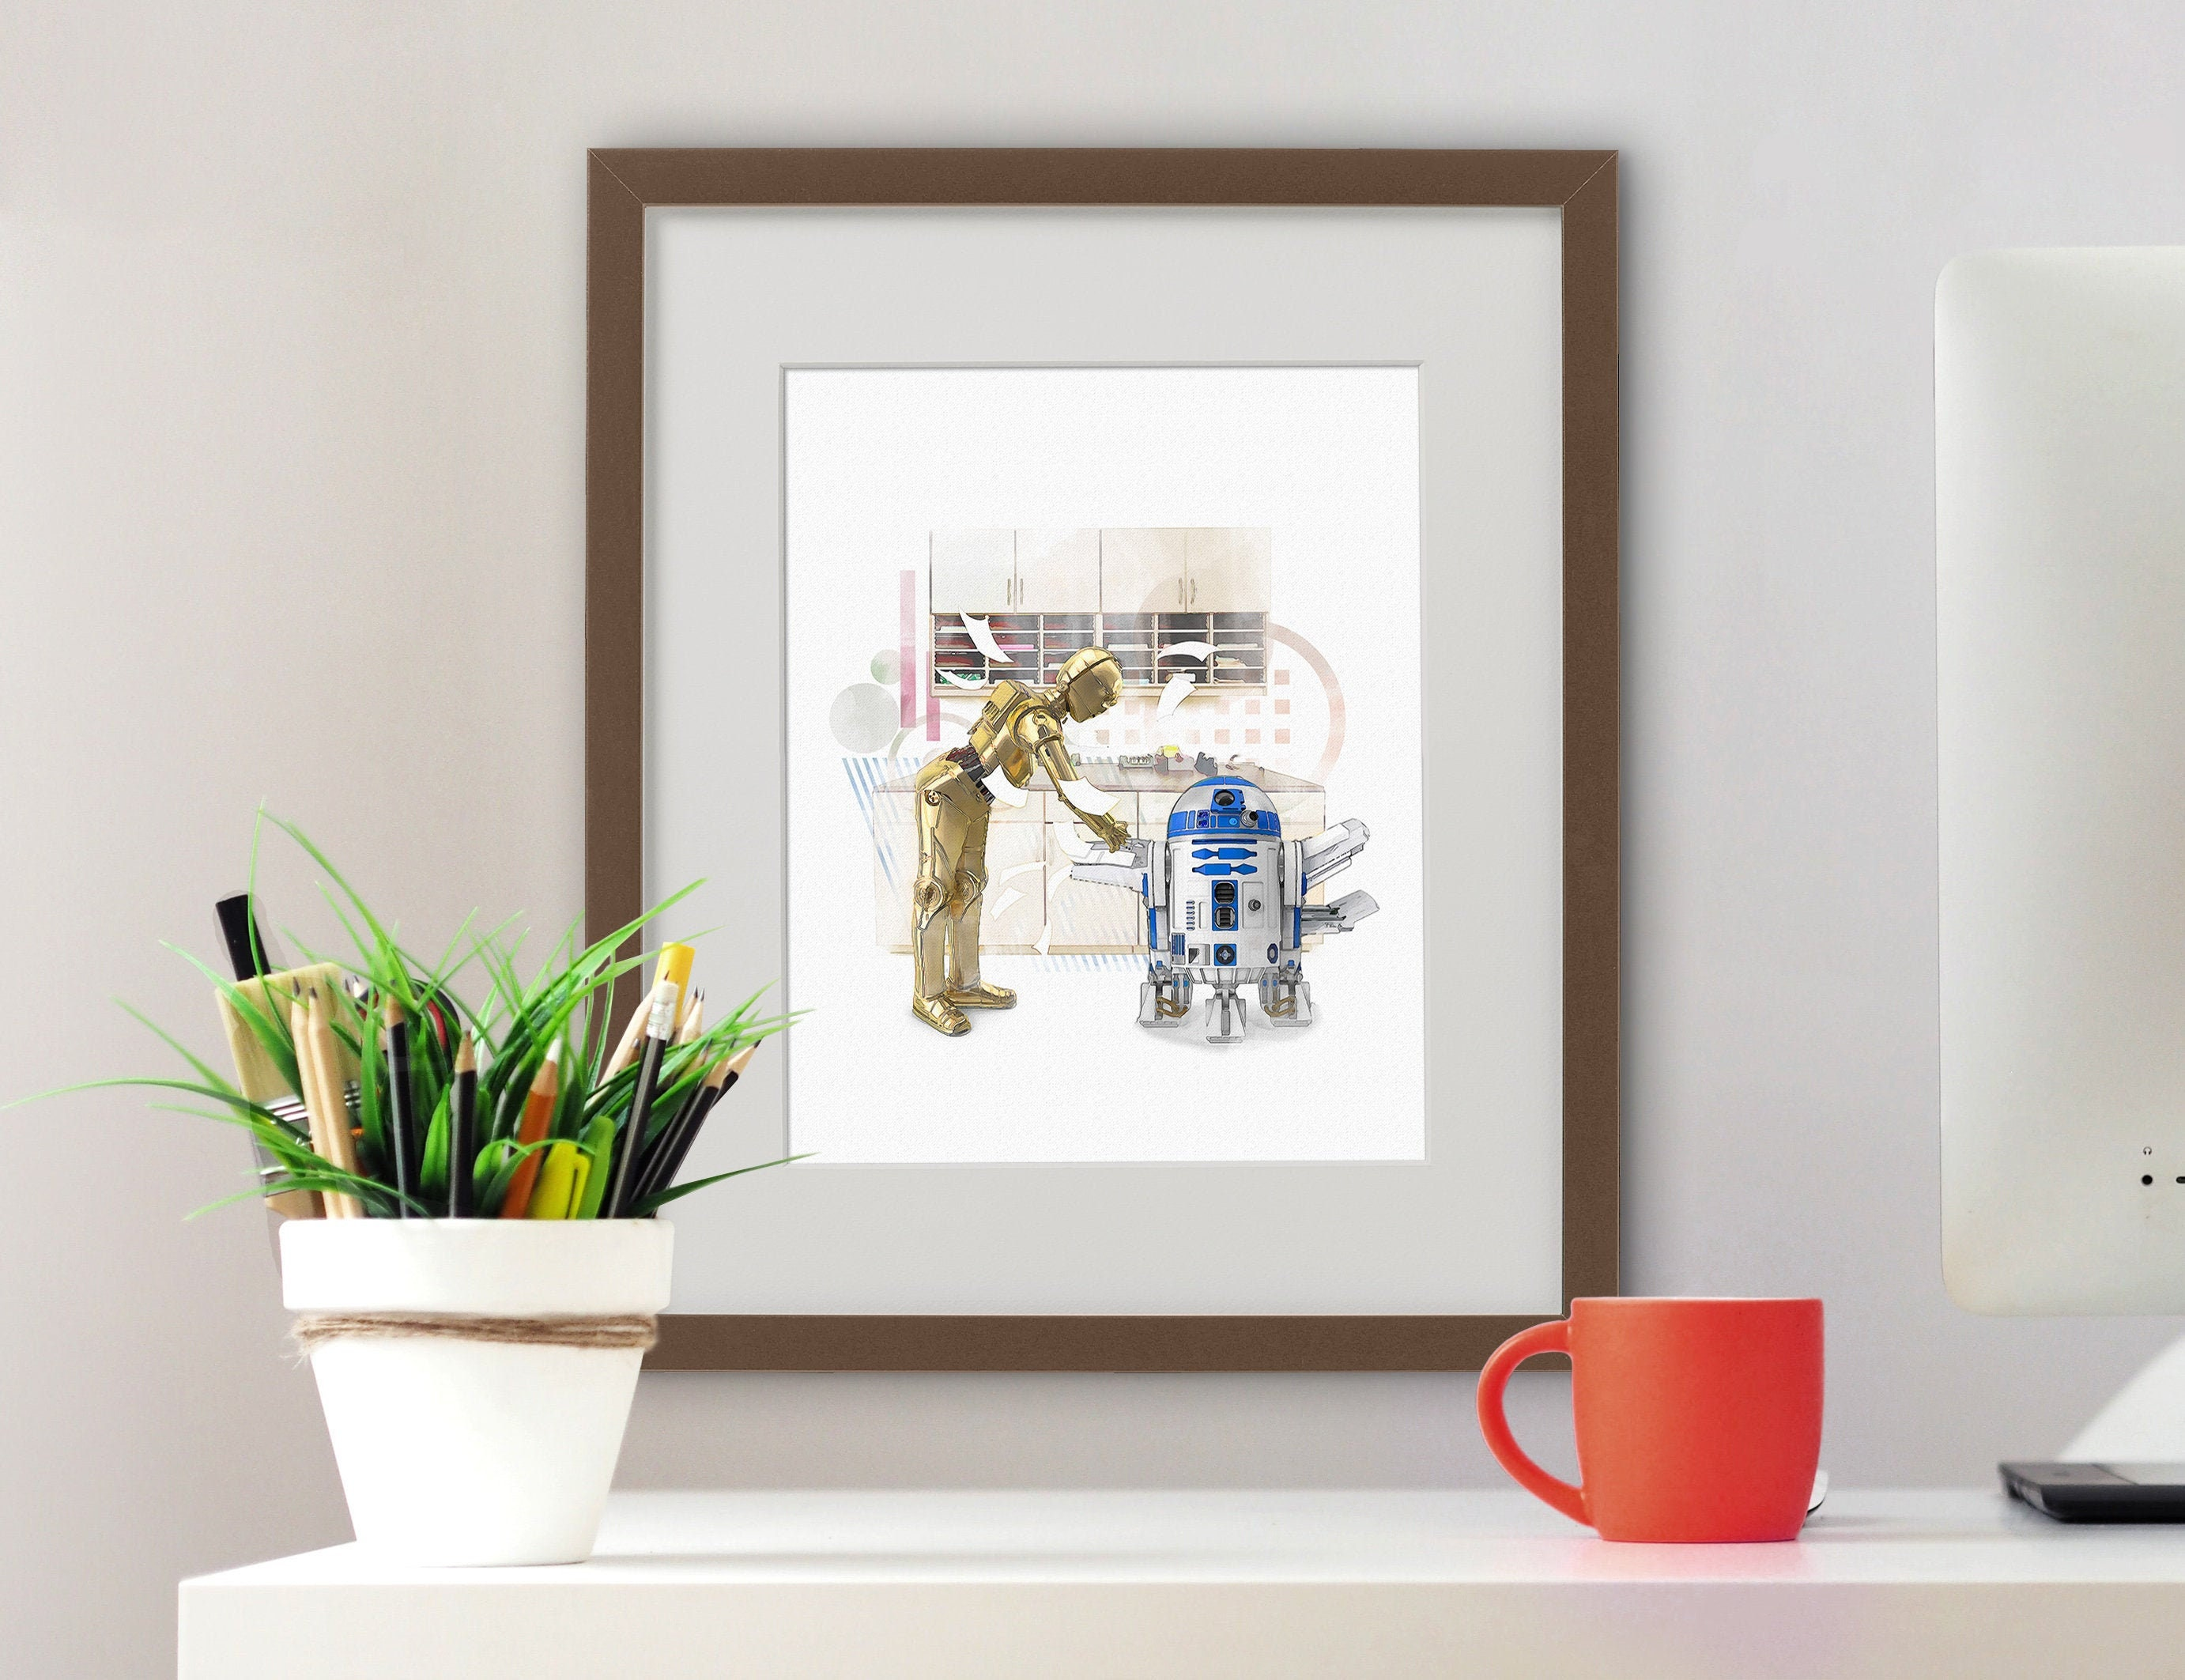 Funny Star Wars Gift Star Wars Bathroom Art Print Star Wars Decor R2d2 C3po Art Prints Art